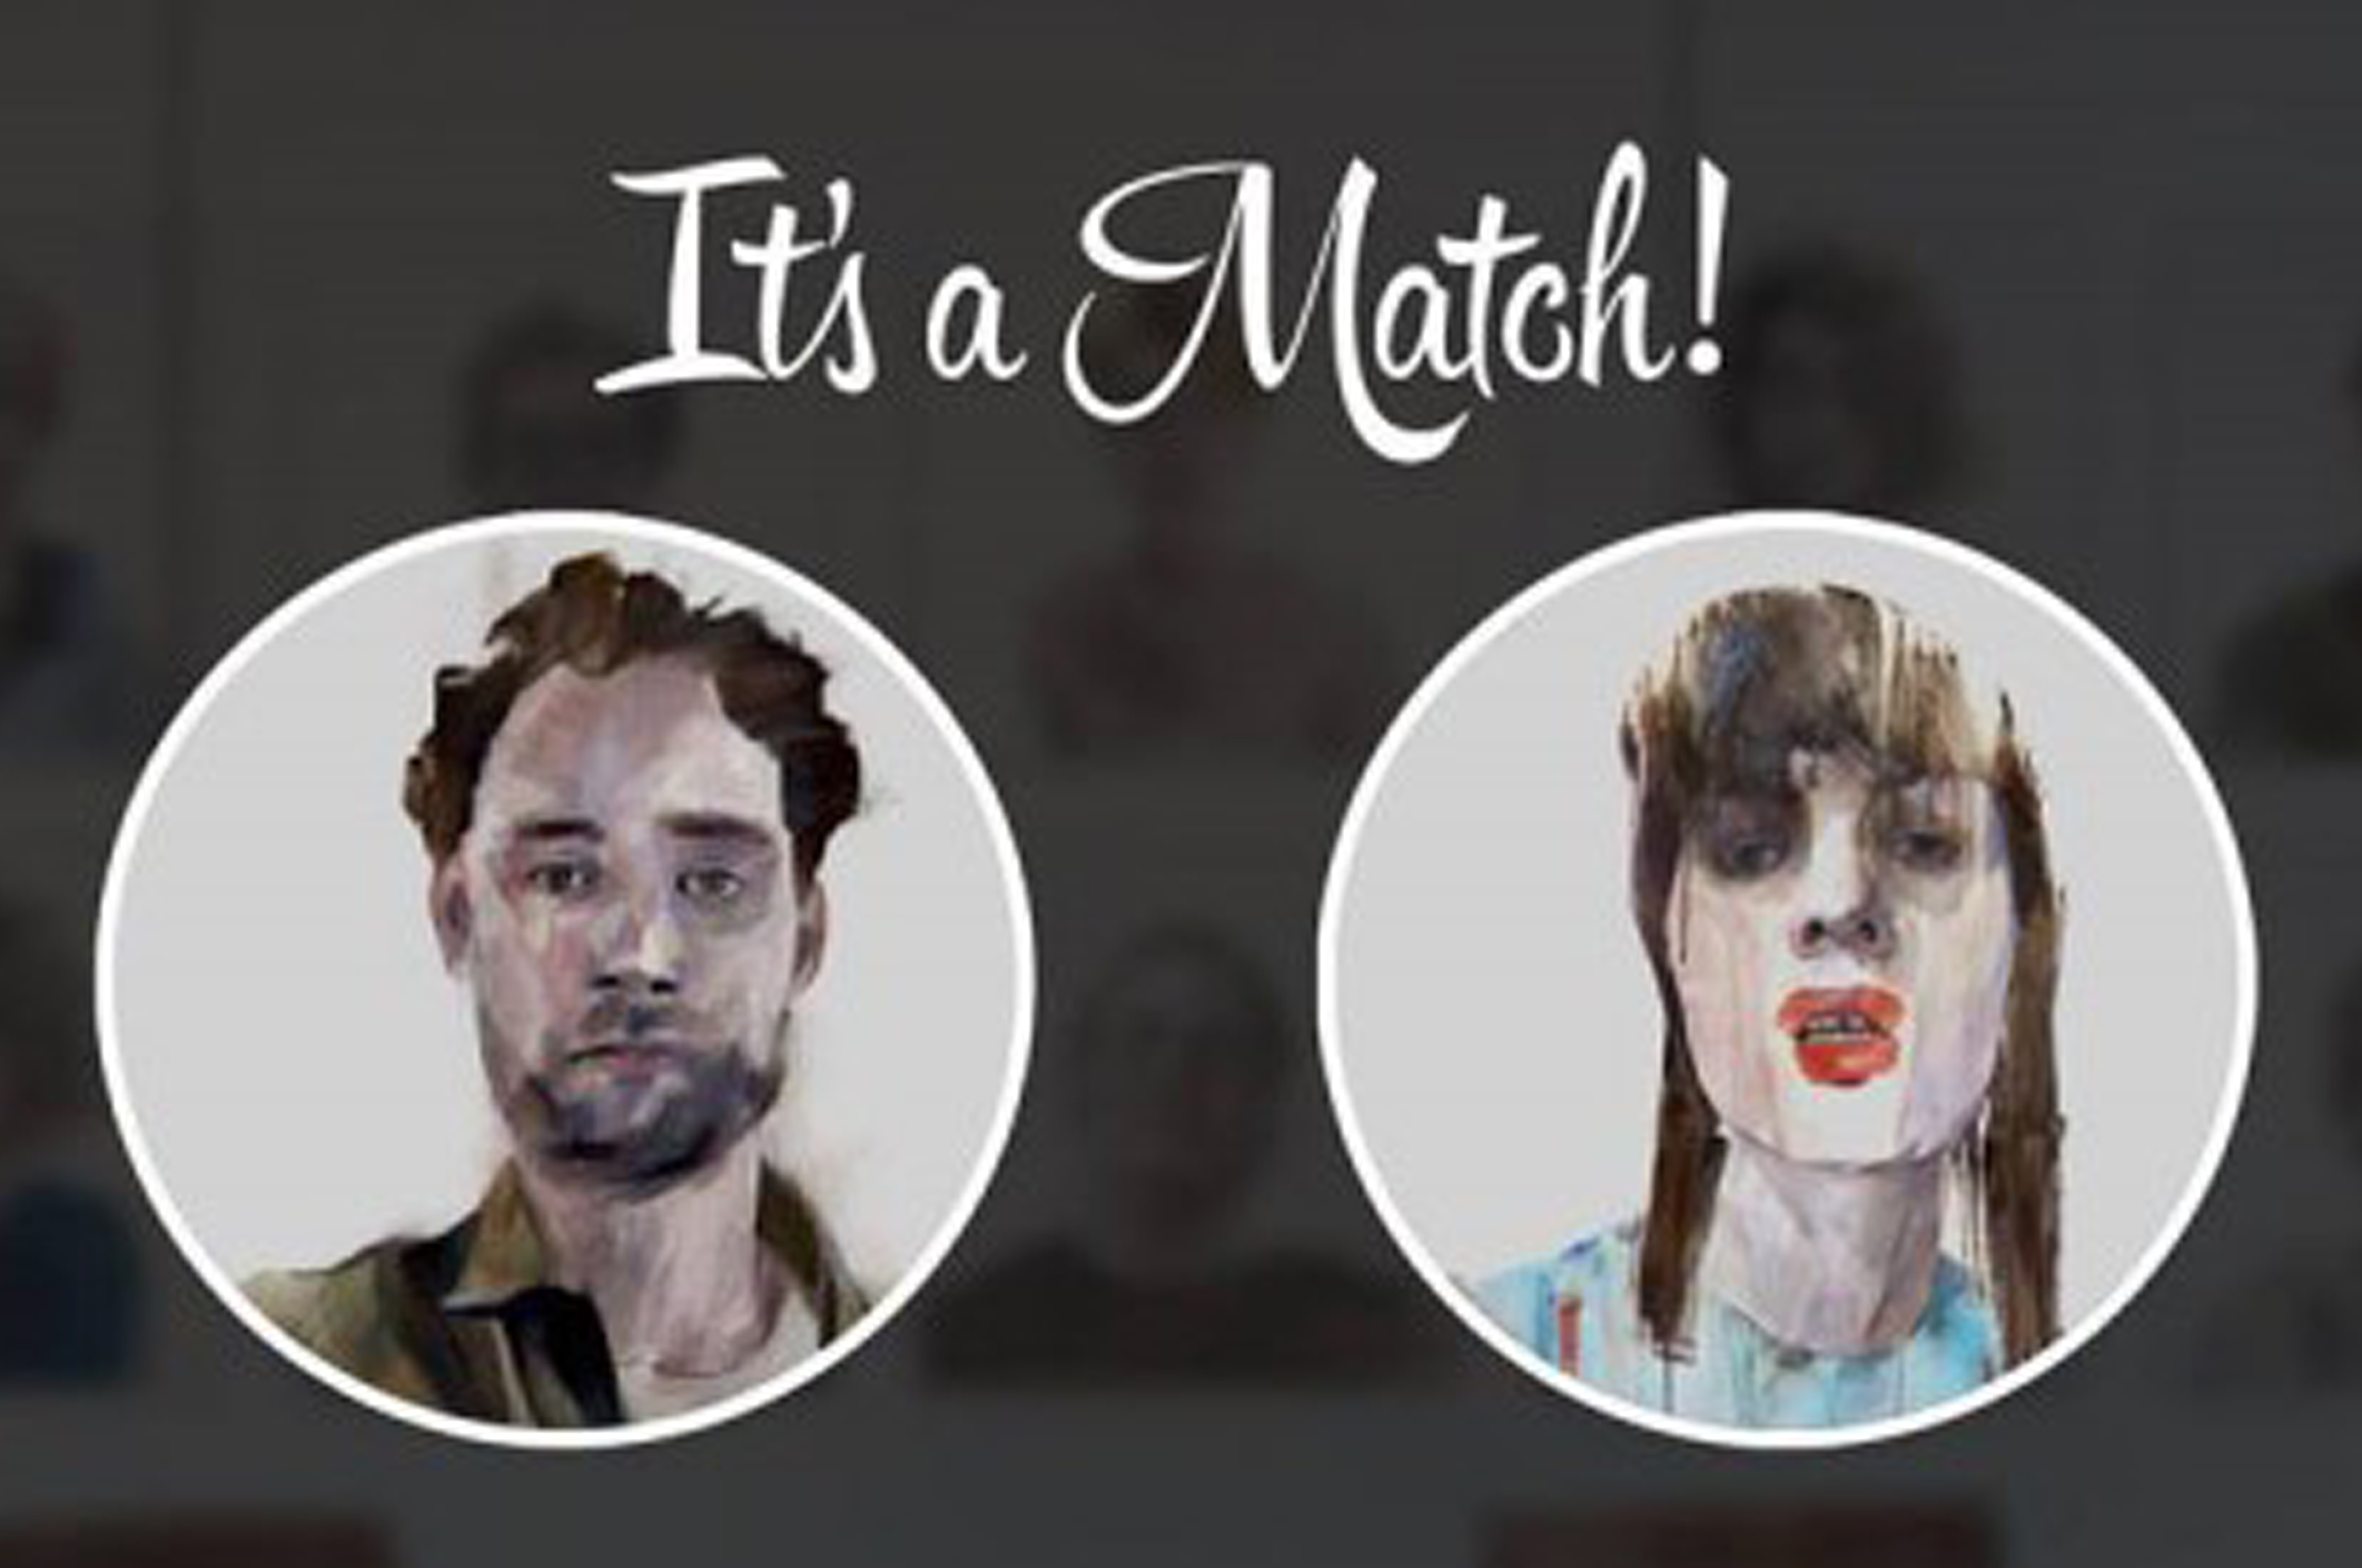 City of Singles – Portraits of Tinder Exhibition